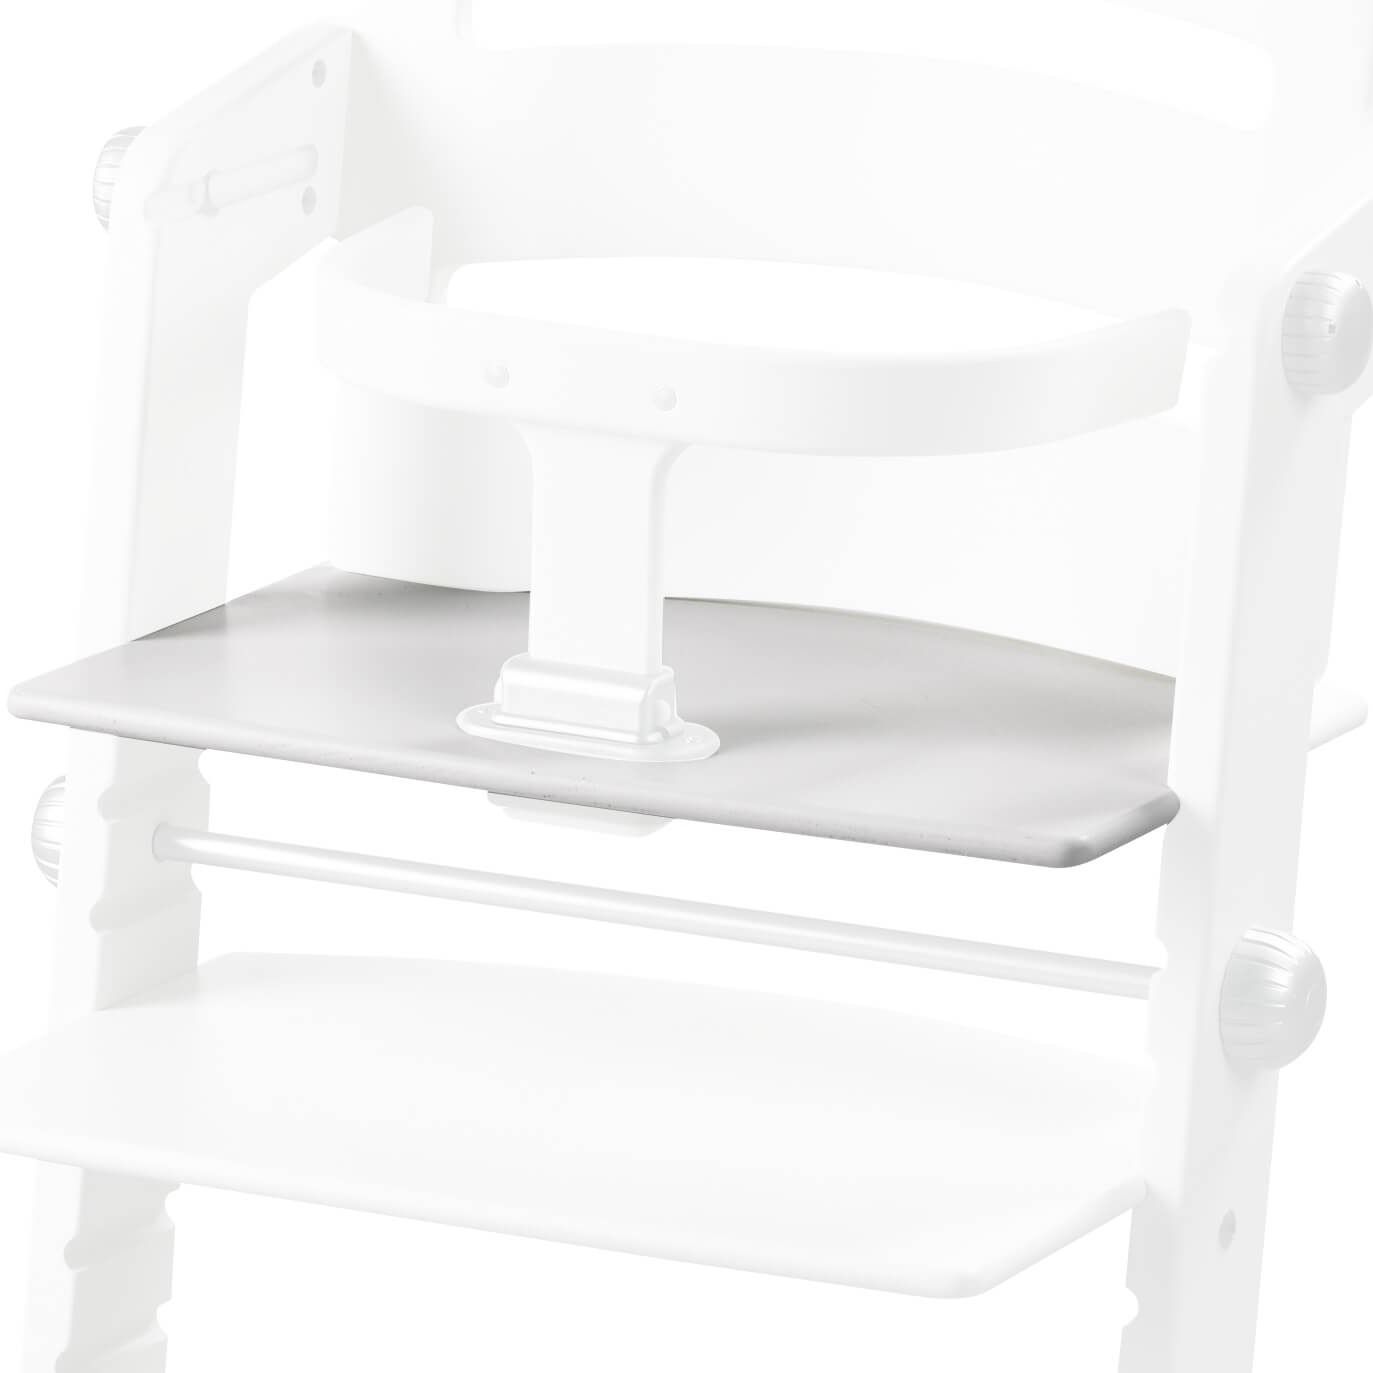 Peachy Geuther Seat Board White For Tamino High Chair Beatyapartments Chair Design Images Beatyapartmentscom